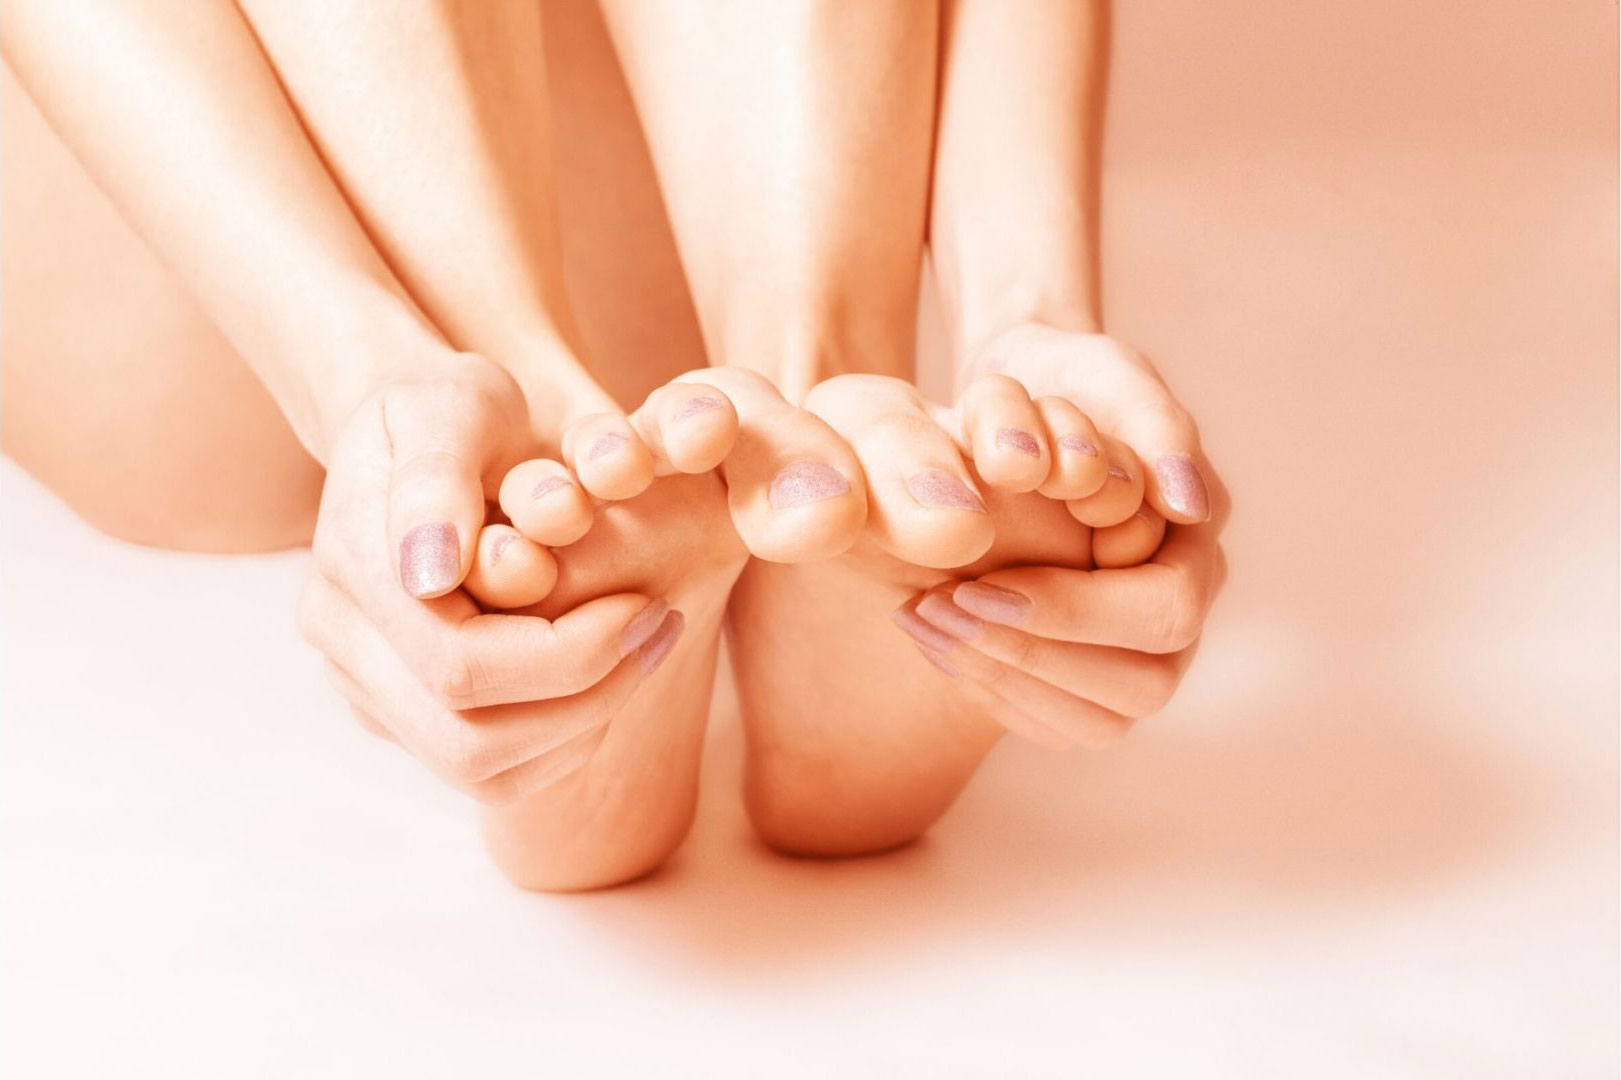 hands touching feet